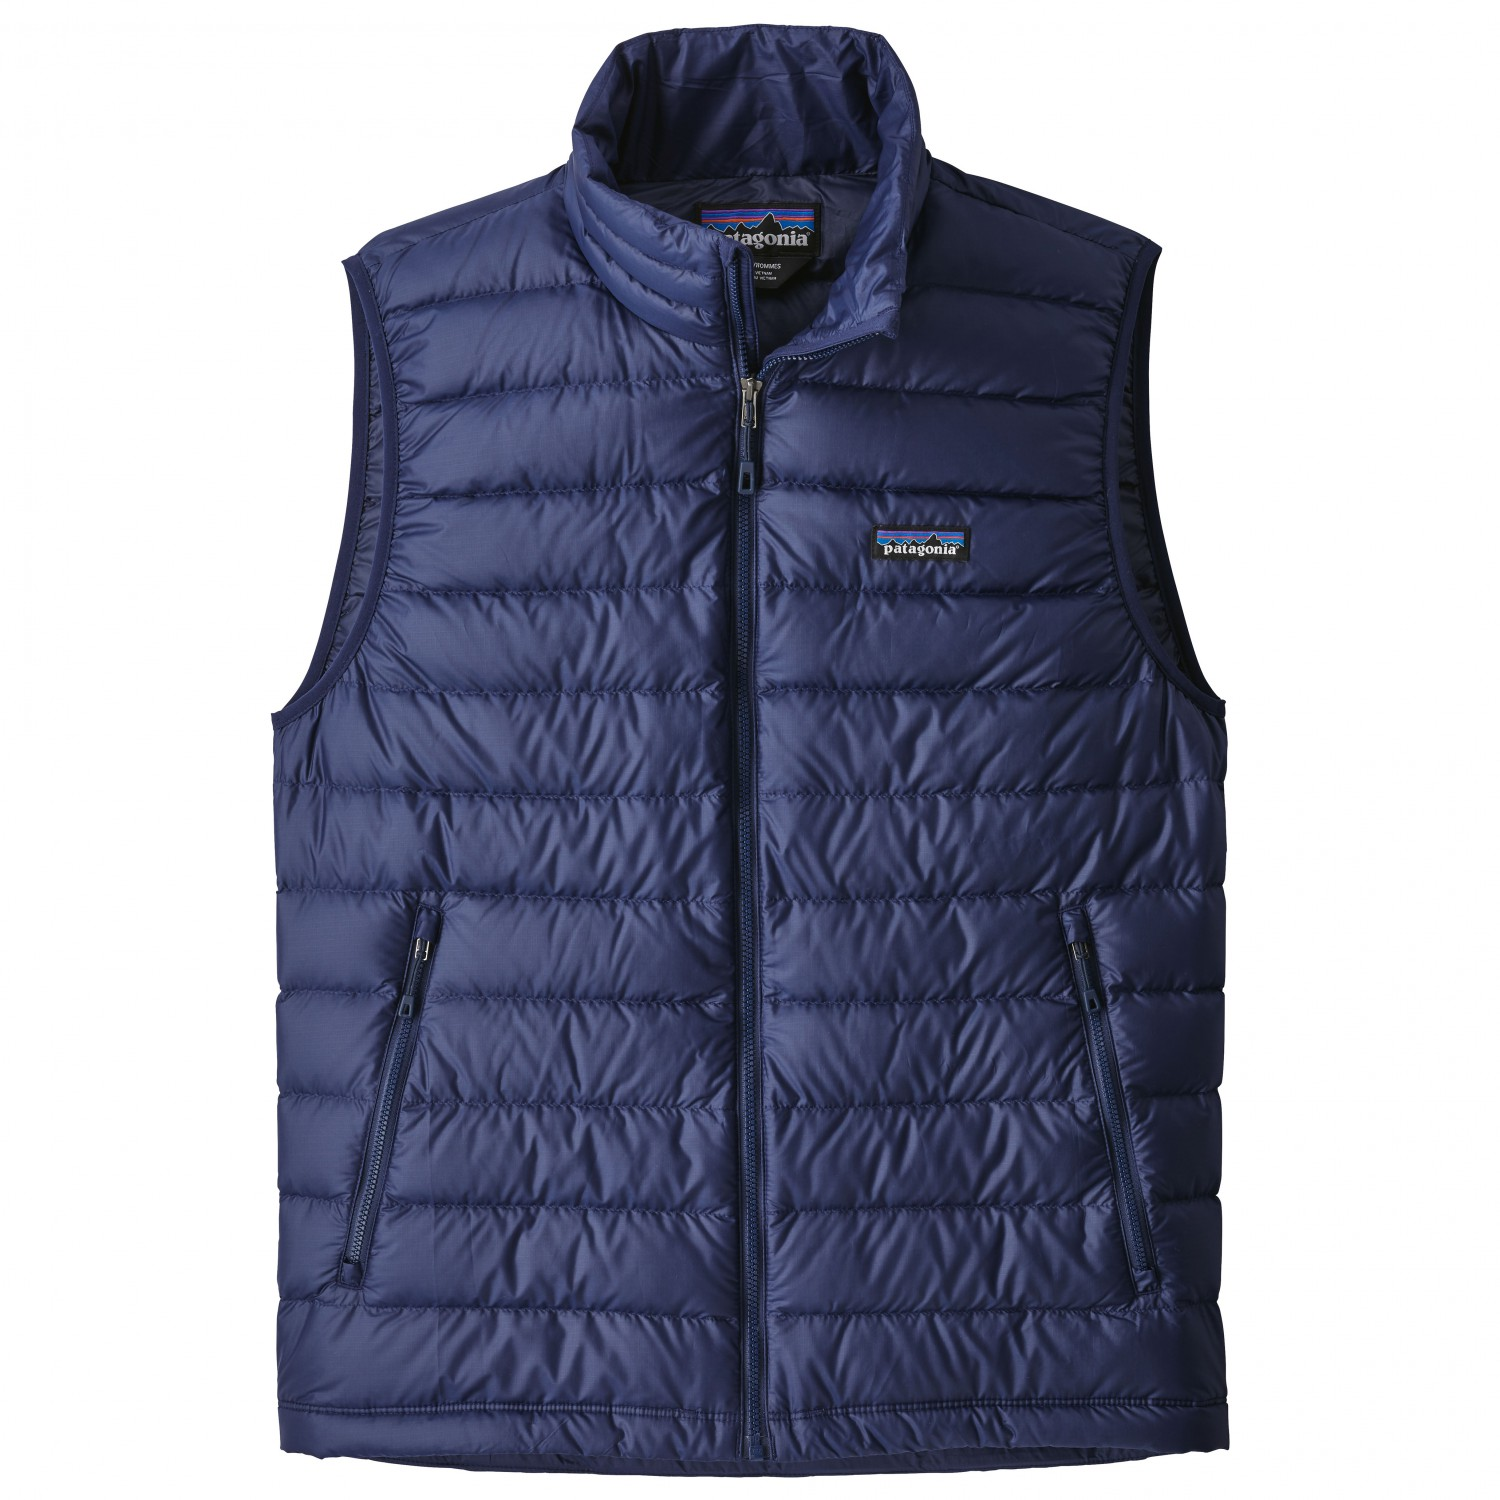 on sale 865d5 b3d21 Patagonia Down Sweater Vest - Daunenweste Herren ...